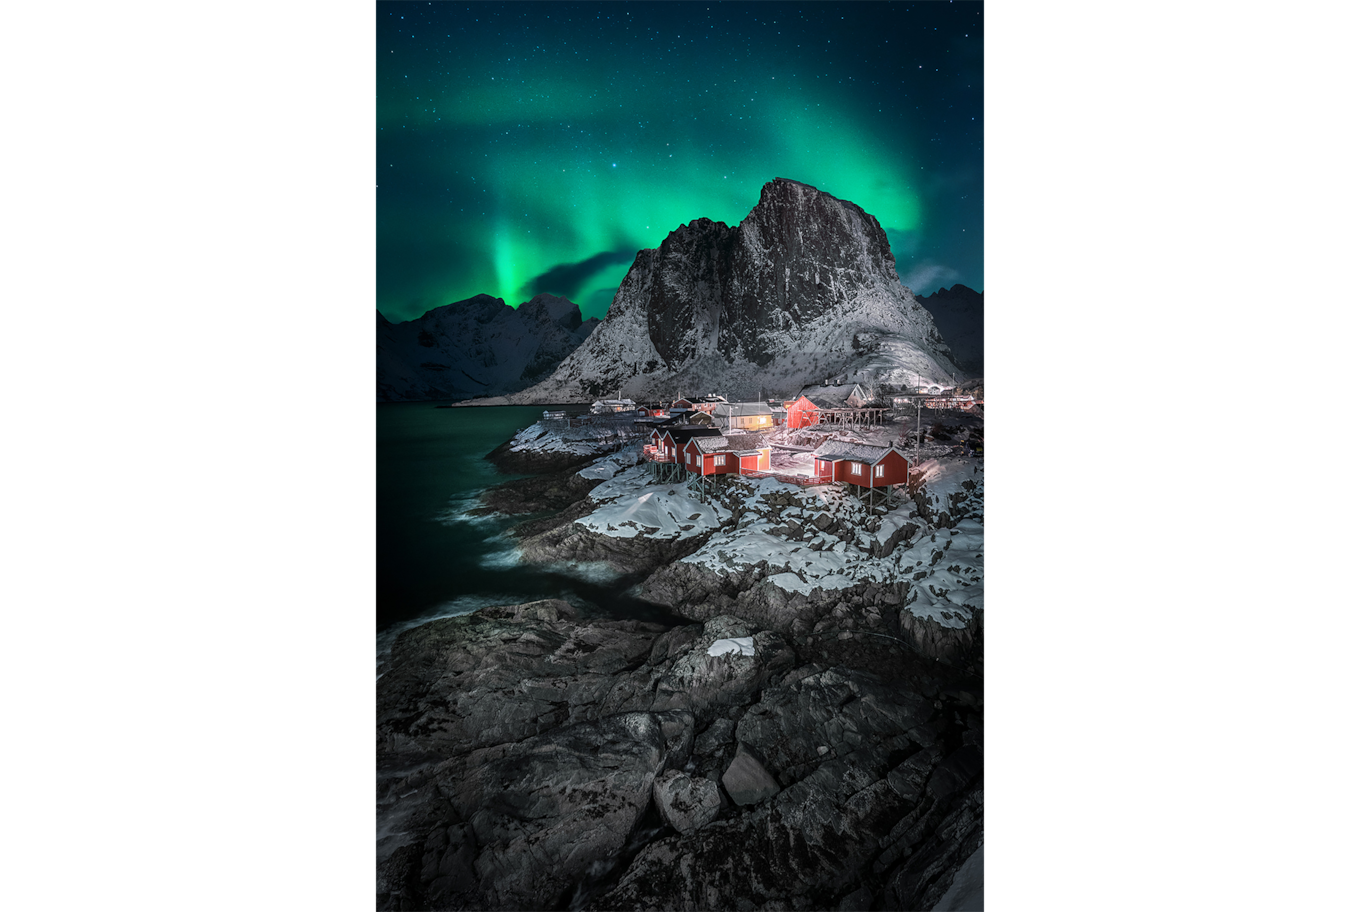 Stefan Liebermann sony alpha 7m3 village of red houses on a lake with aurora borealis behind the mountain